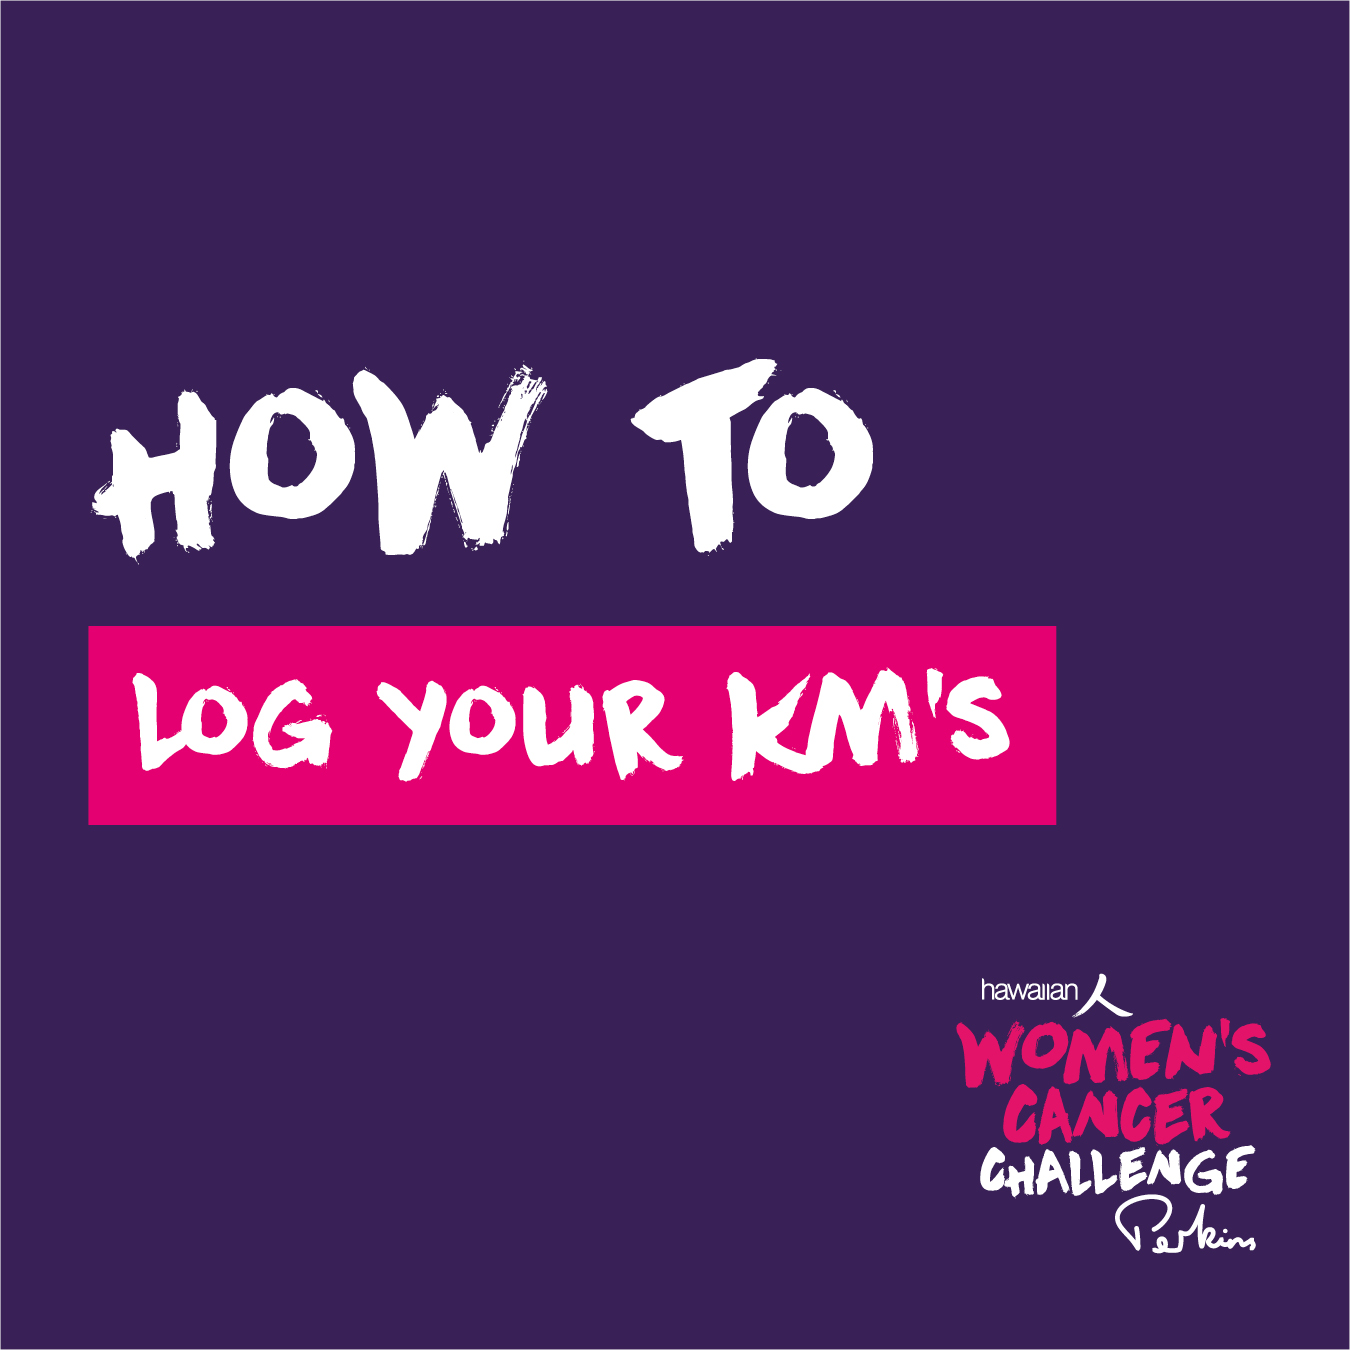 How to log Km's